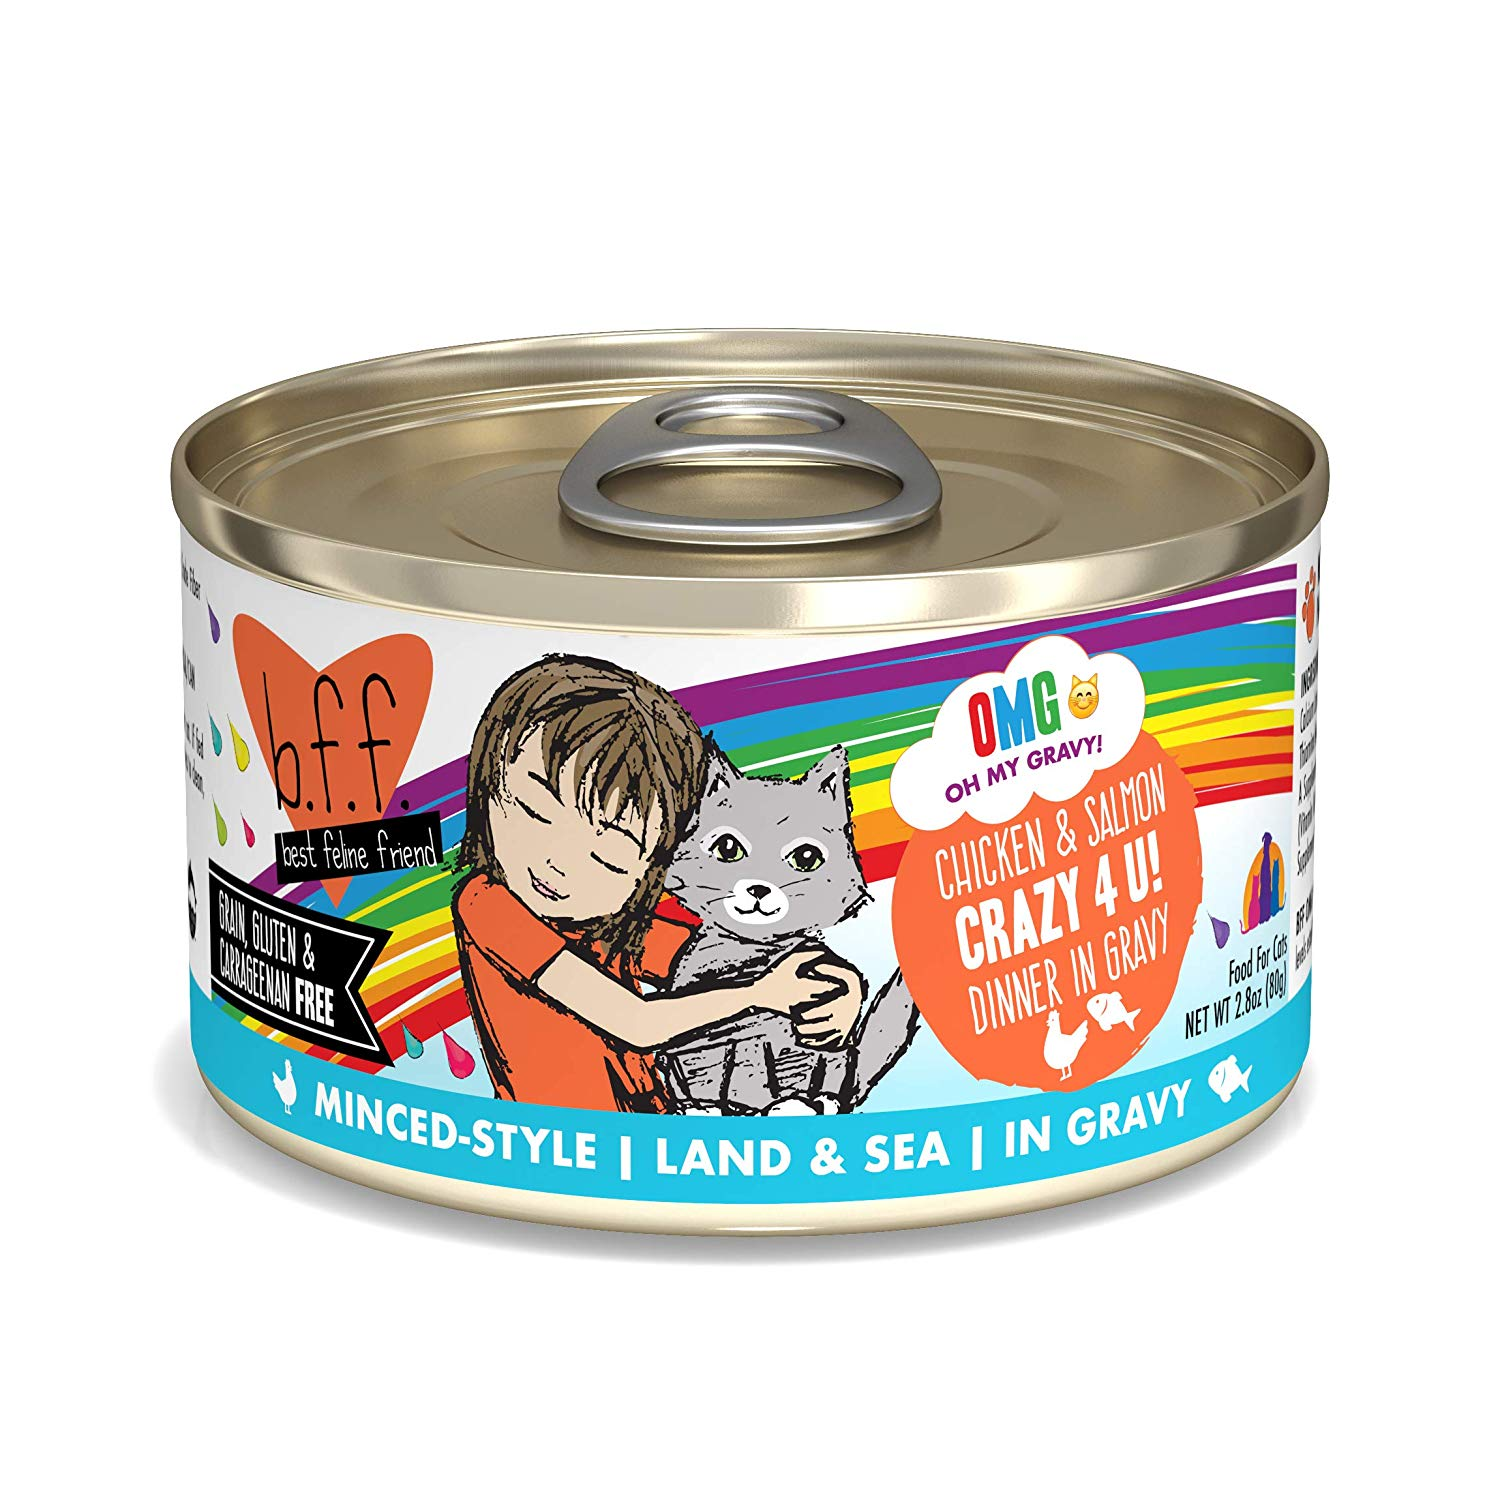 BFF Oh My Gravy! Crazy 4 U! Chicken & Salmon Dinner in Gravy Grain-Free Wet Cat Food, 2.8-oz